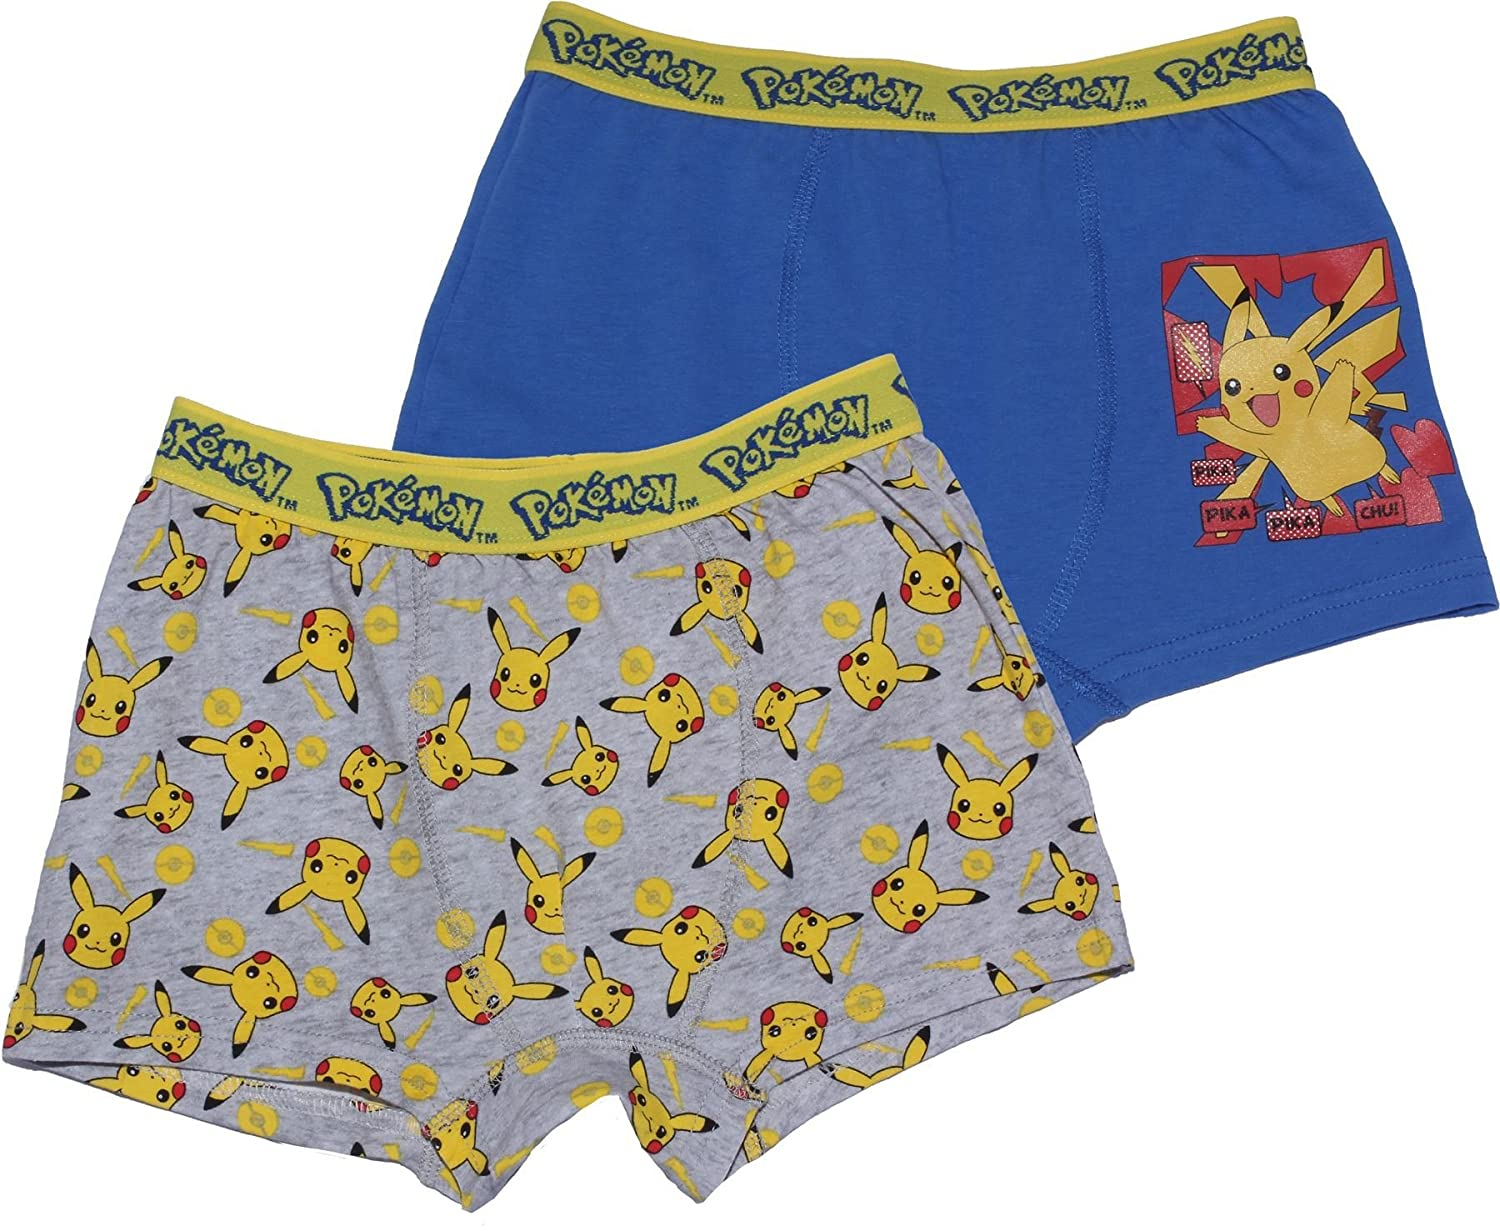 Pokemon Two Pack Childrens Boxer Shorts Grey 4-5 Years By BestTrend